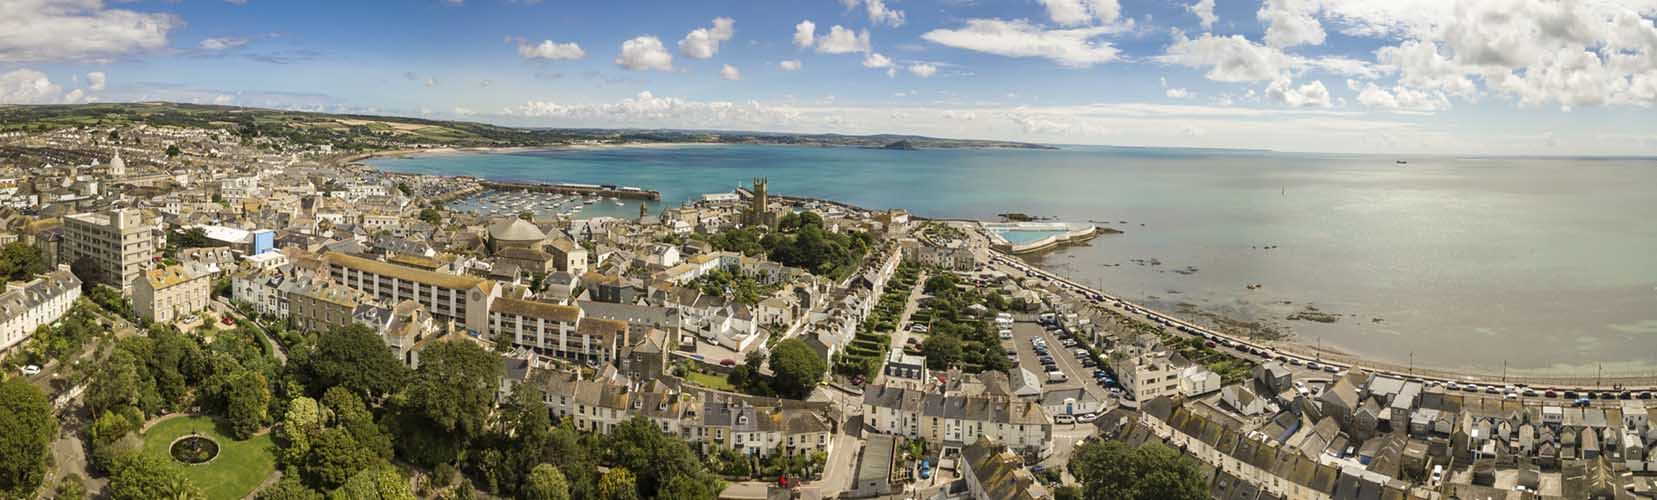 [Penzance - Aerial Panorama of the Town]